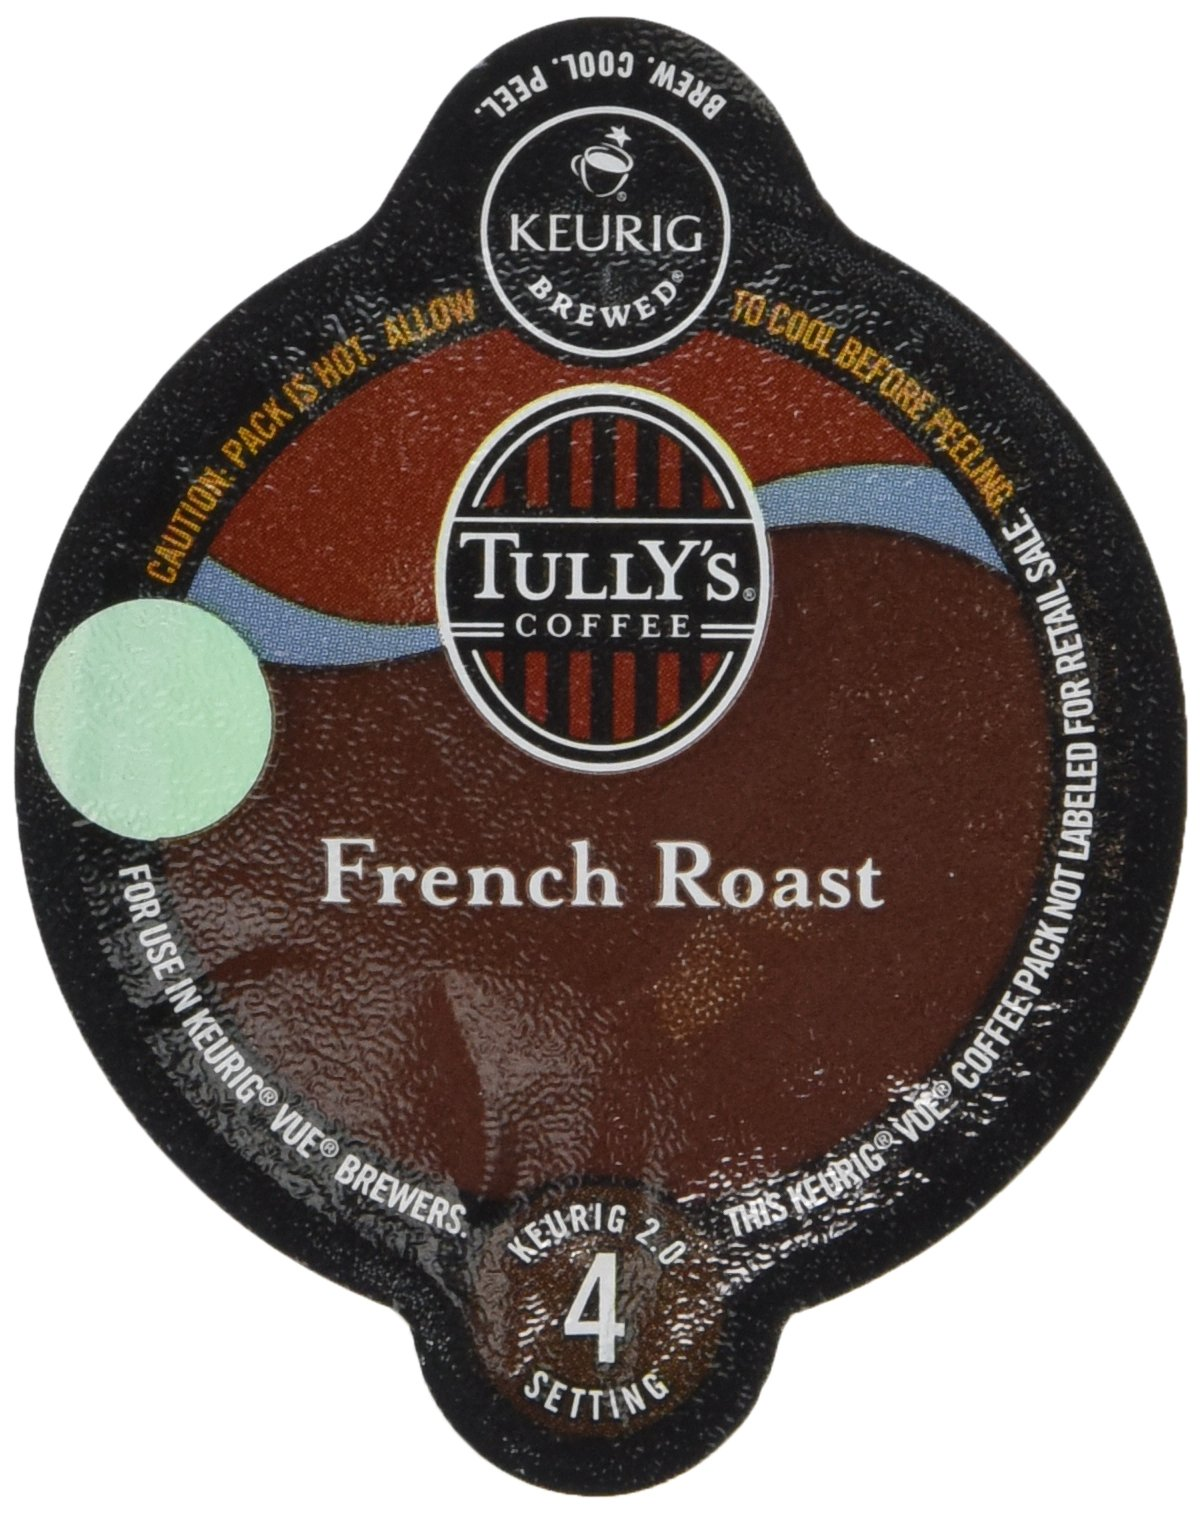 Tully's French Roast Coffee Keurig Vue Portion Pack, 32 Count 0.4 oz.